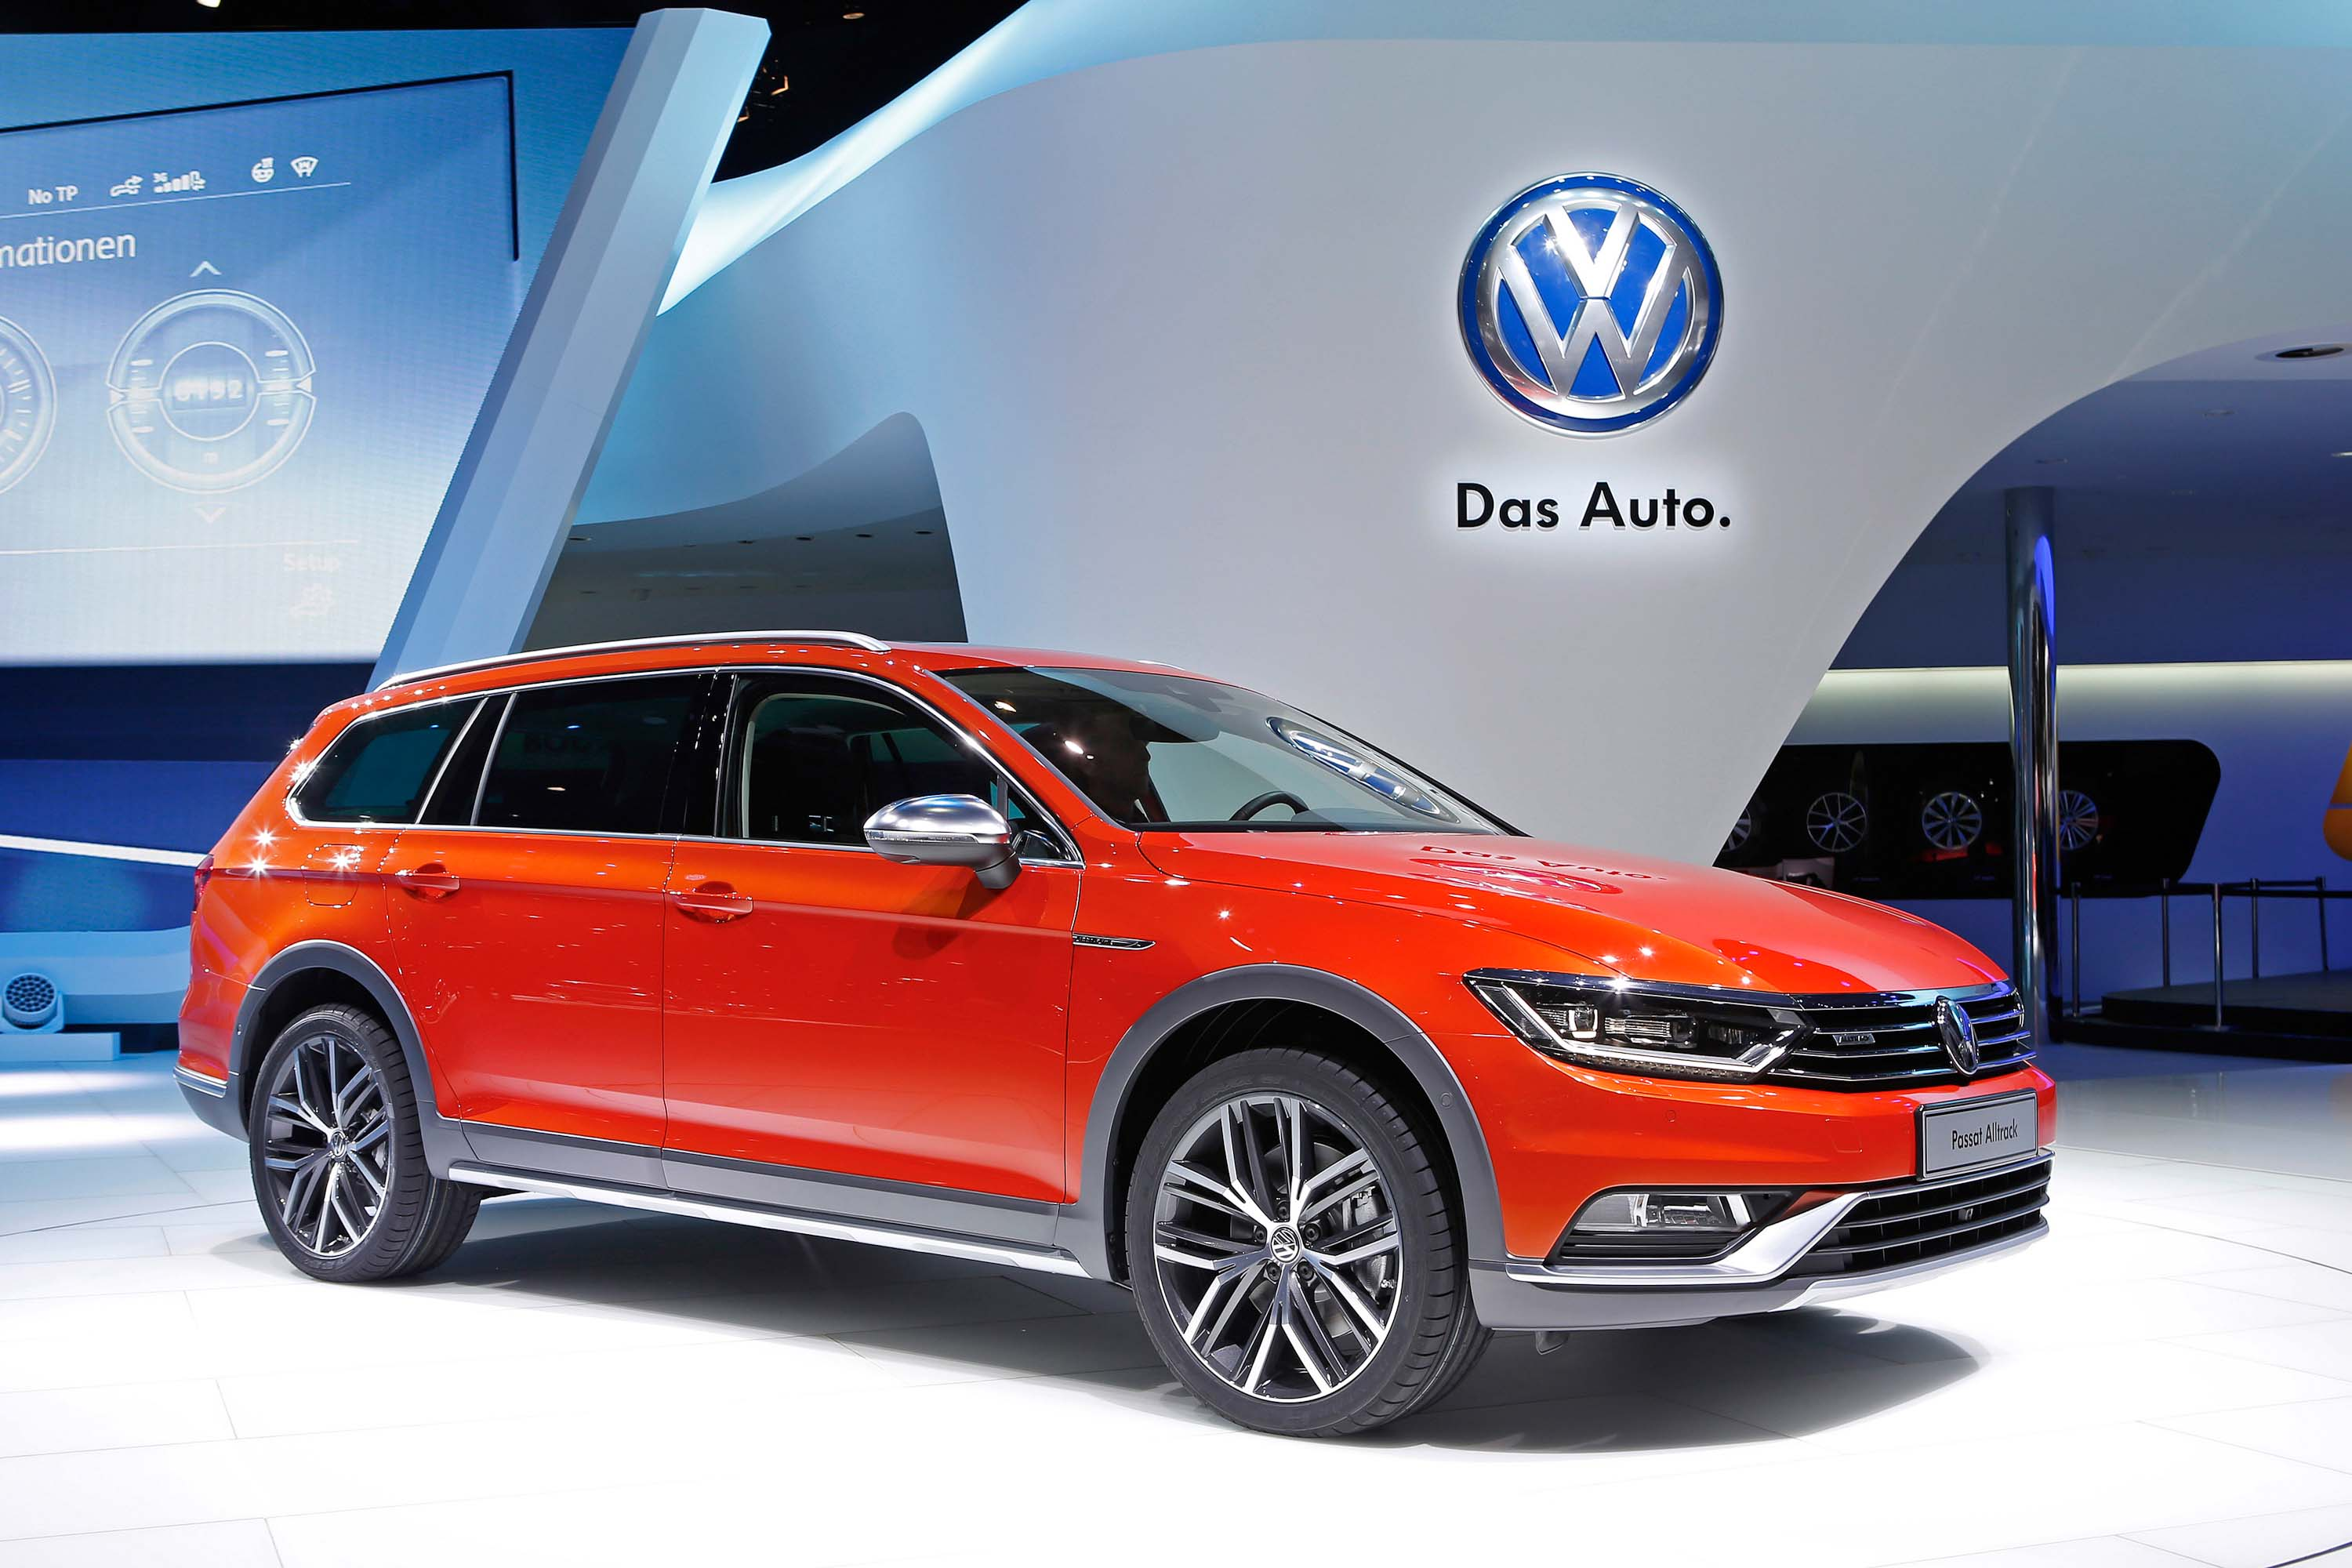 b8 volkswagen passat alltrack awd wagon photo gallery between the axles. Black Bedroom Furniture Sets. Home Design Ideas